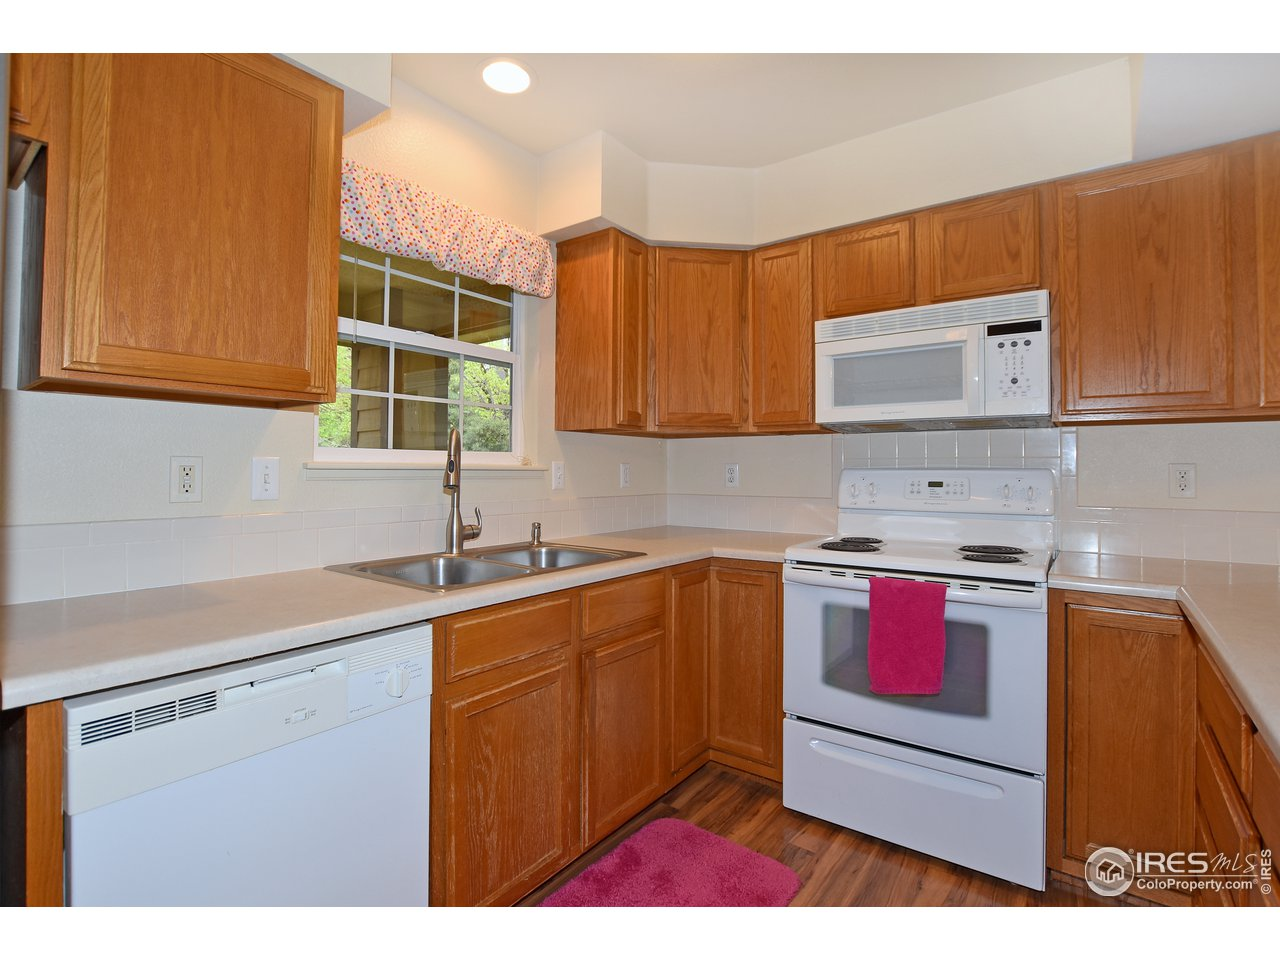 Kitchen includes all appliances